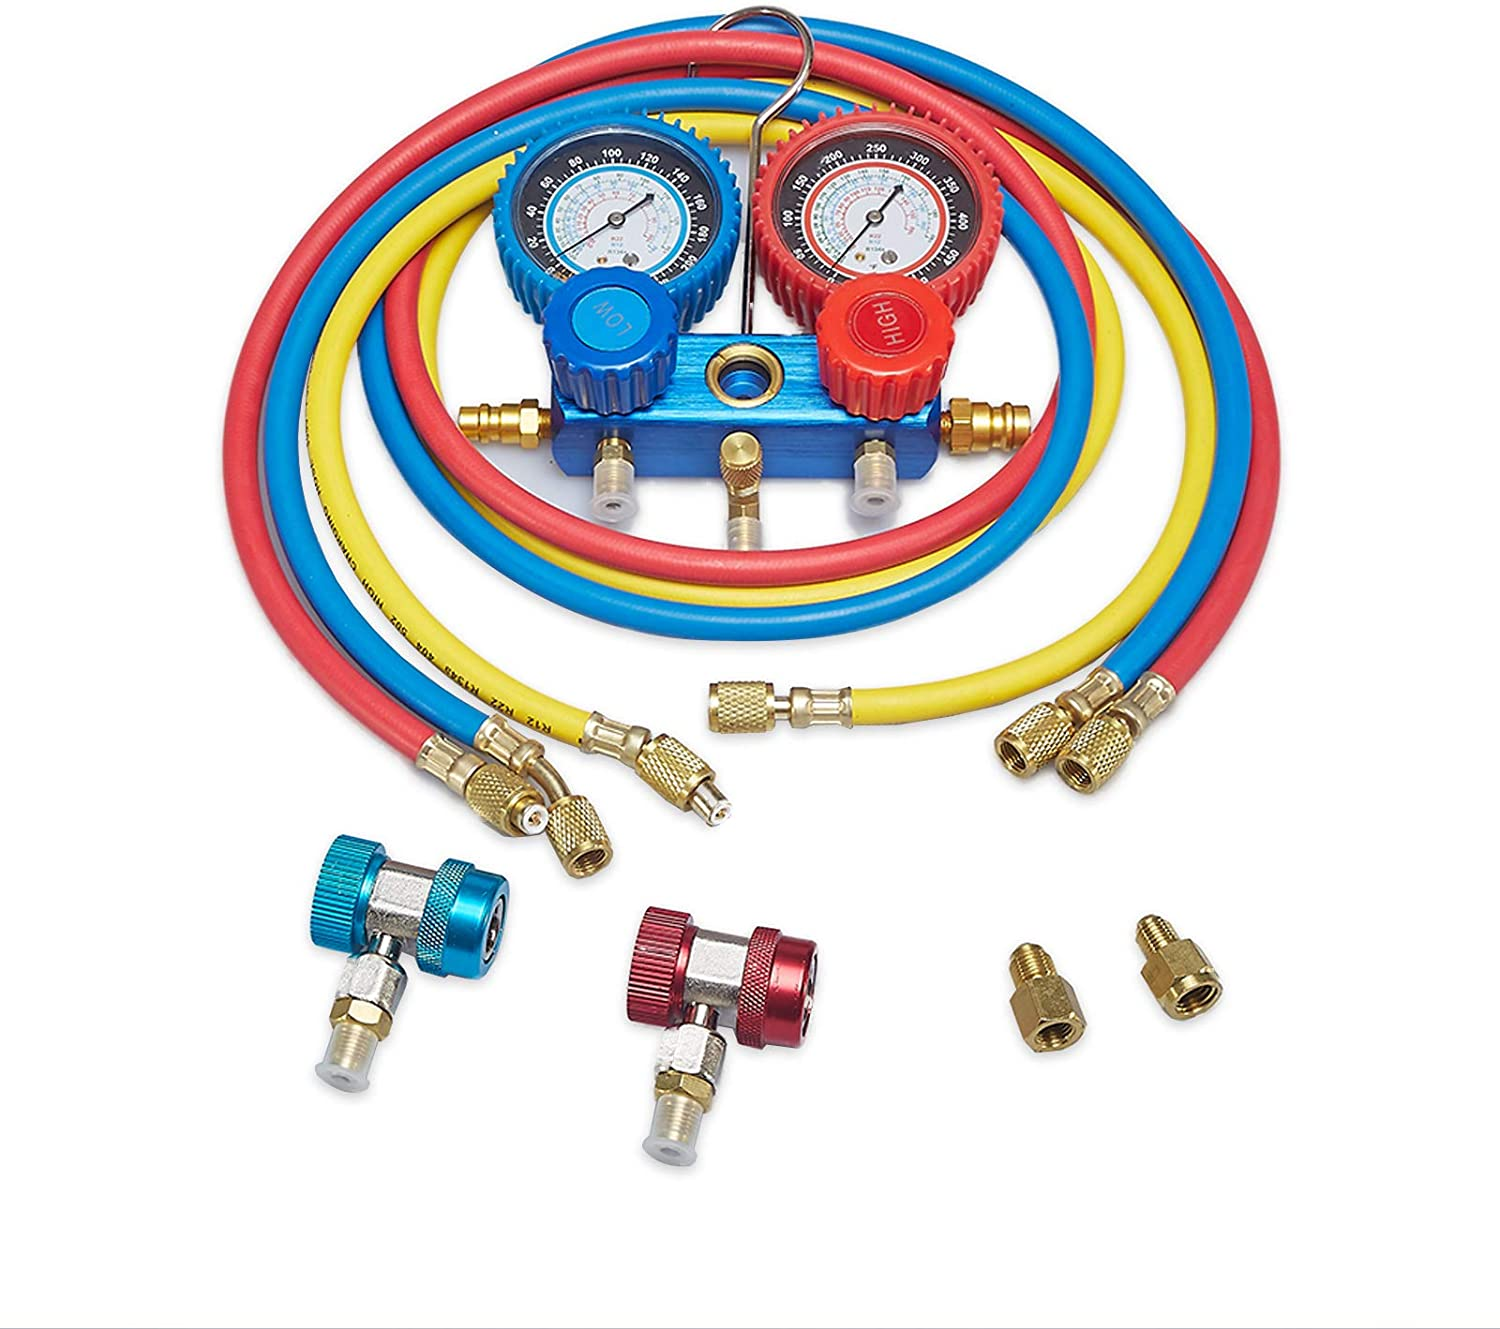 AUTOGEN 3 Way AC Diagnostic Manifold Gauge Set for Freon Charging, Fits R134A R404A R22 and R410 Refrigerants, with 5FT Hose, Acme Tank Adapters, Quick Couplers and Can Tap